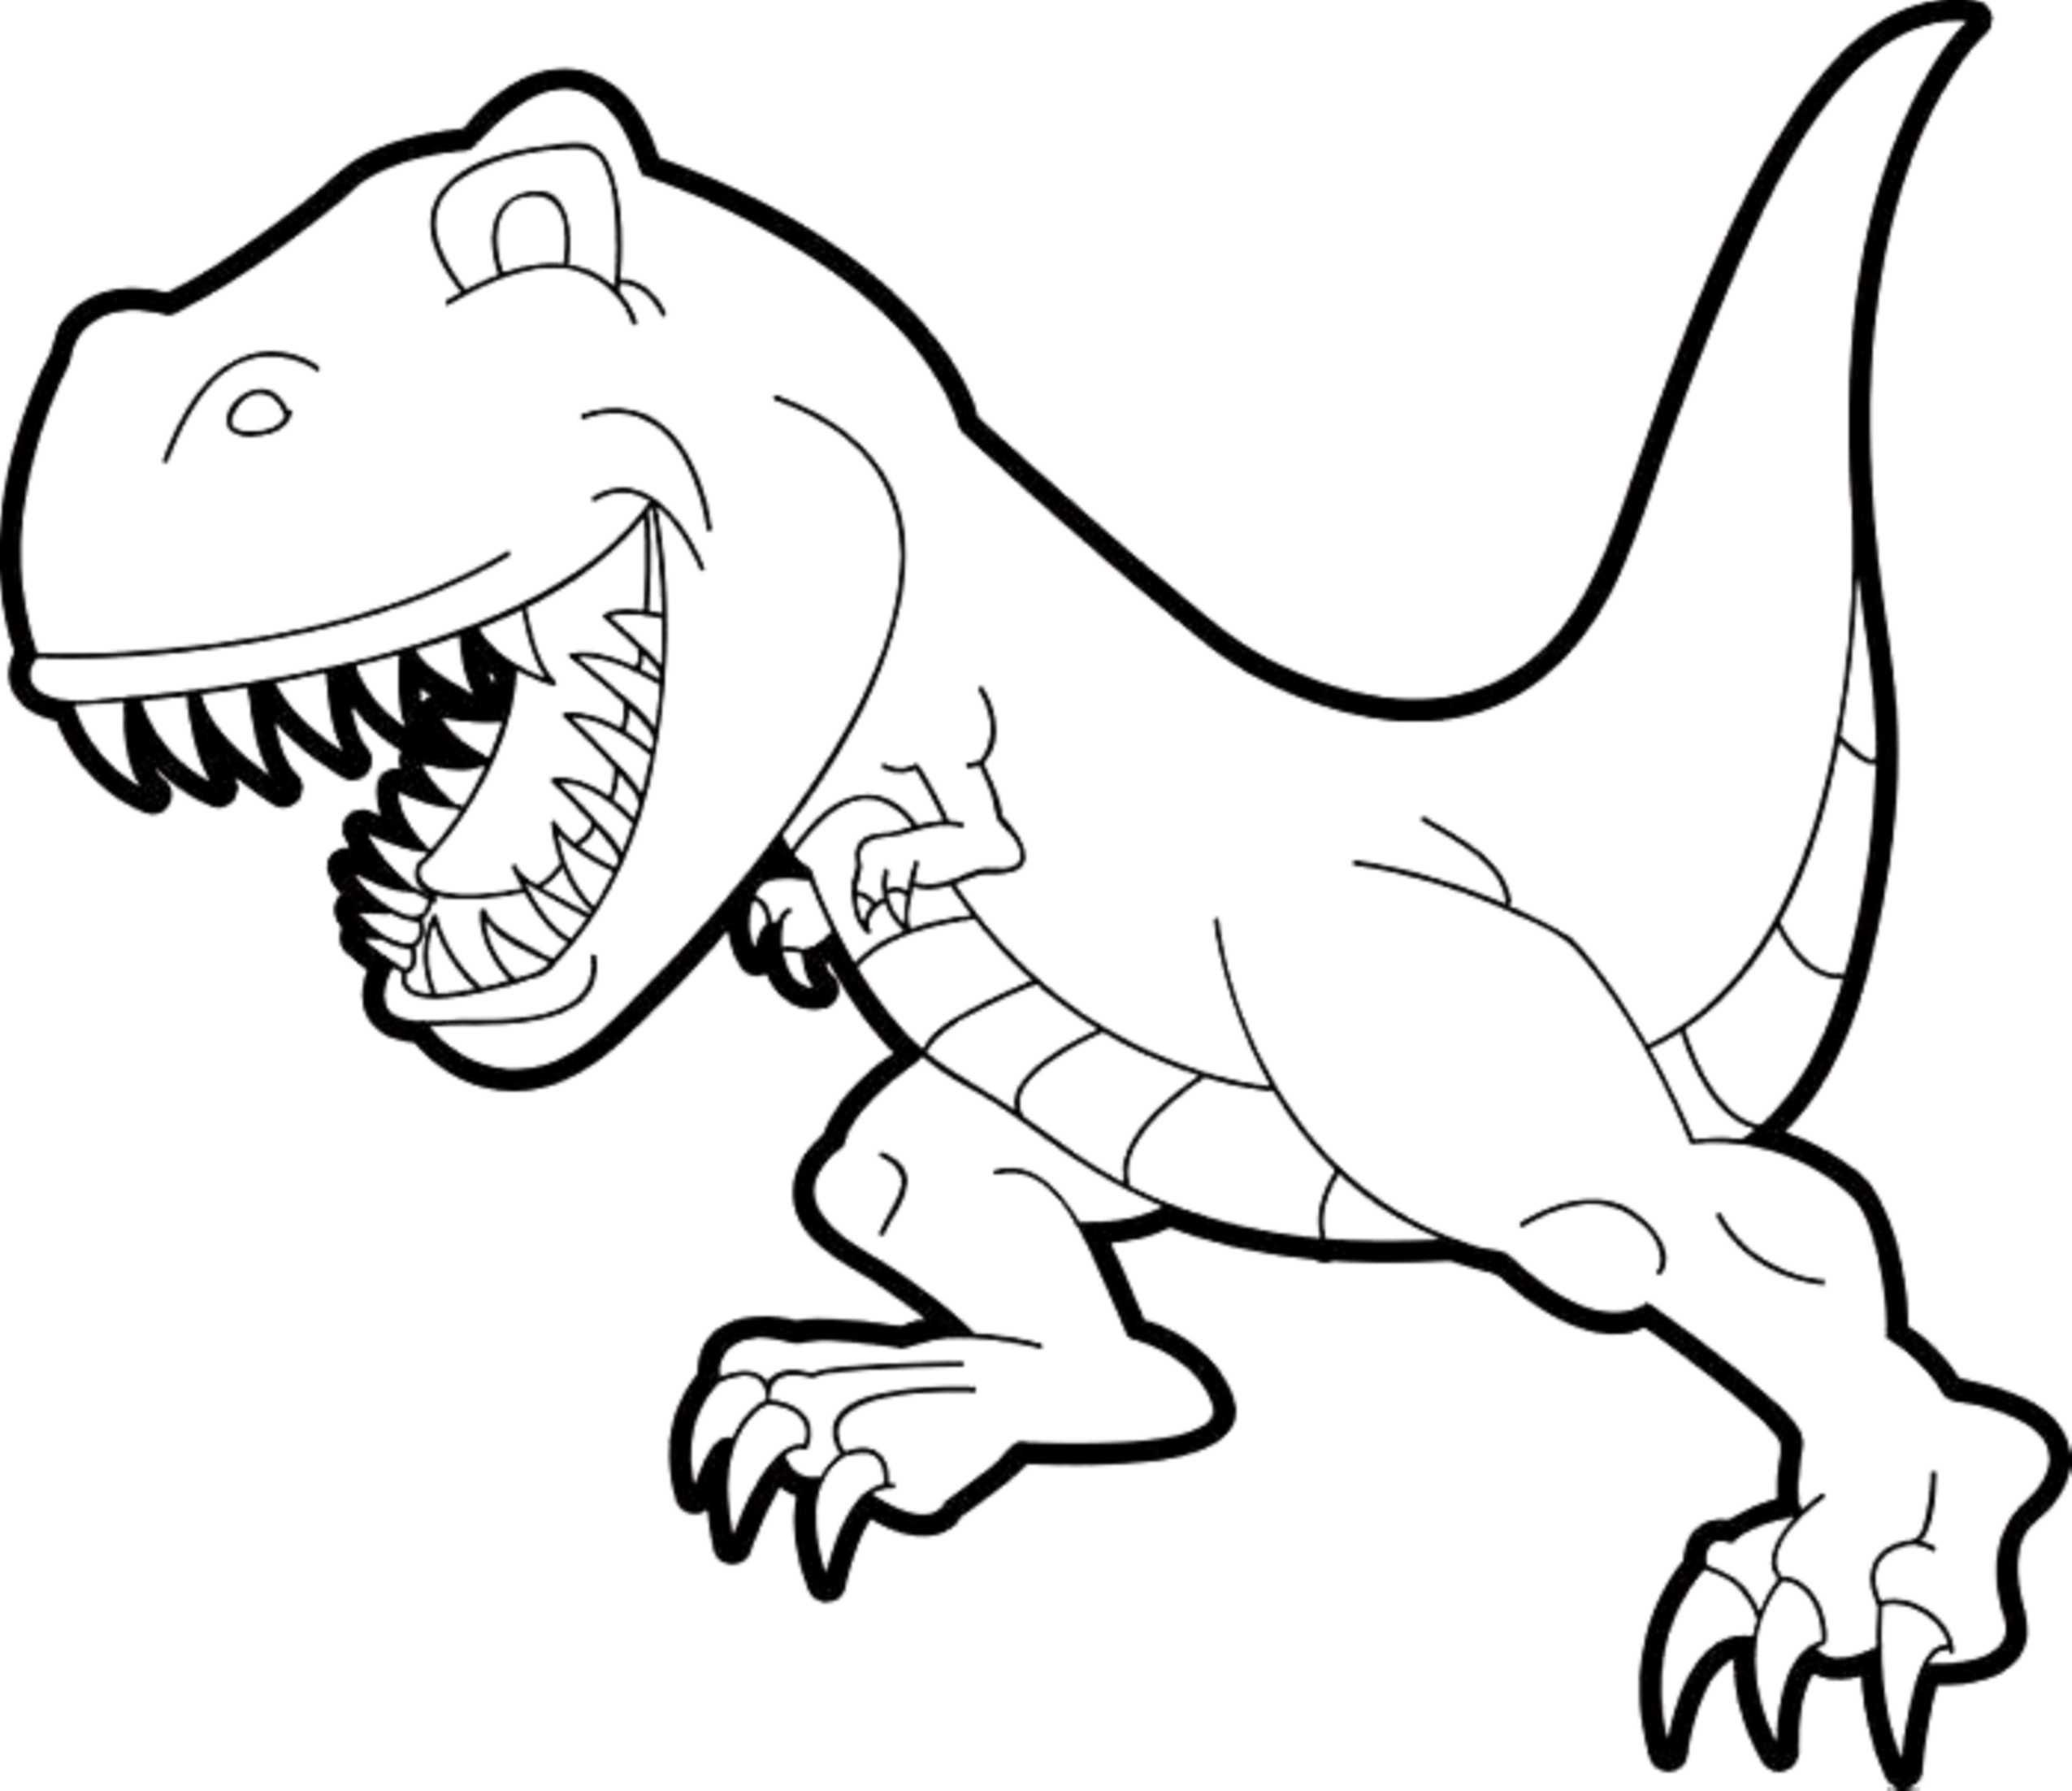 Scary Takeoffs Test For Kids Trump Turtle Twin Names Dinosaurs Coloring Pages